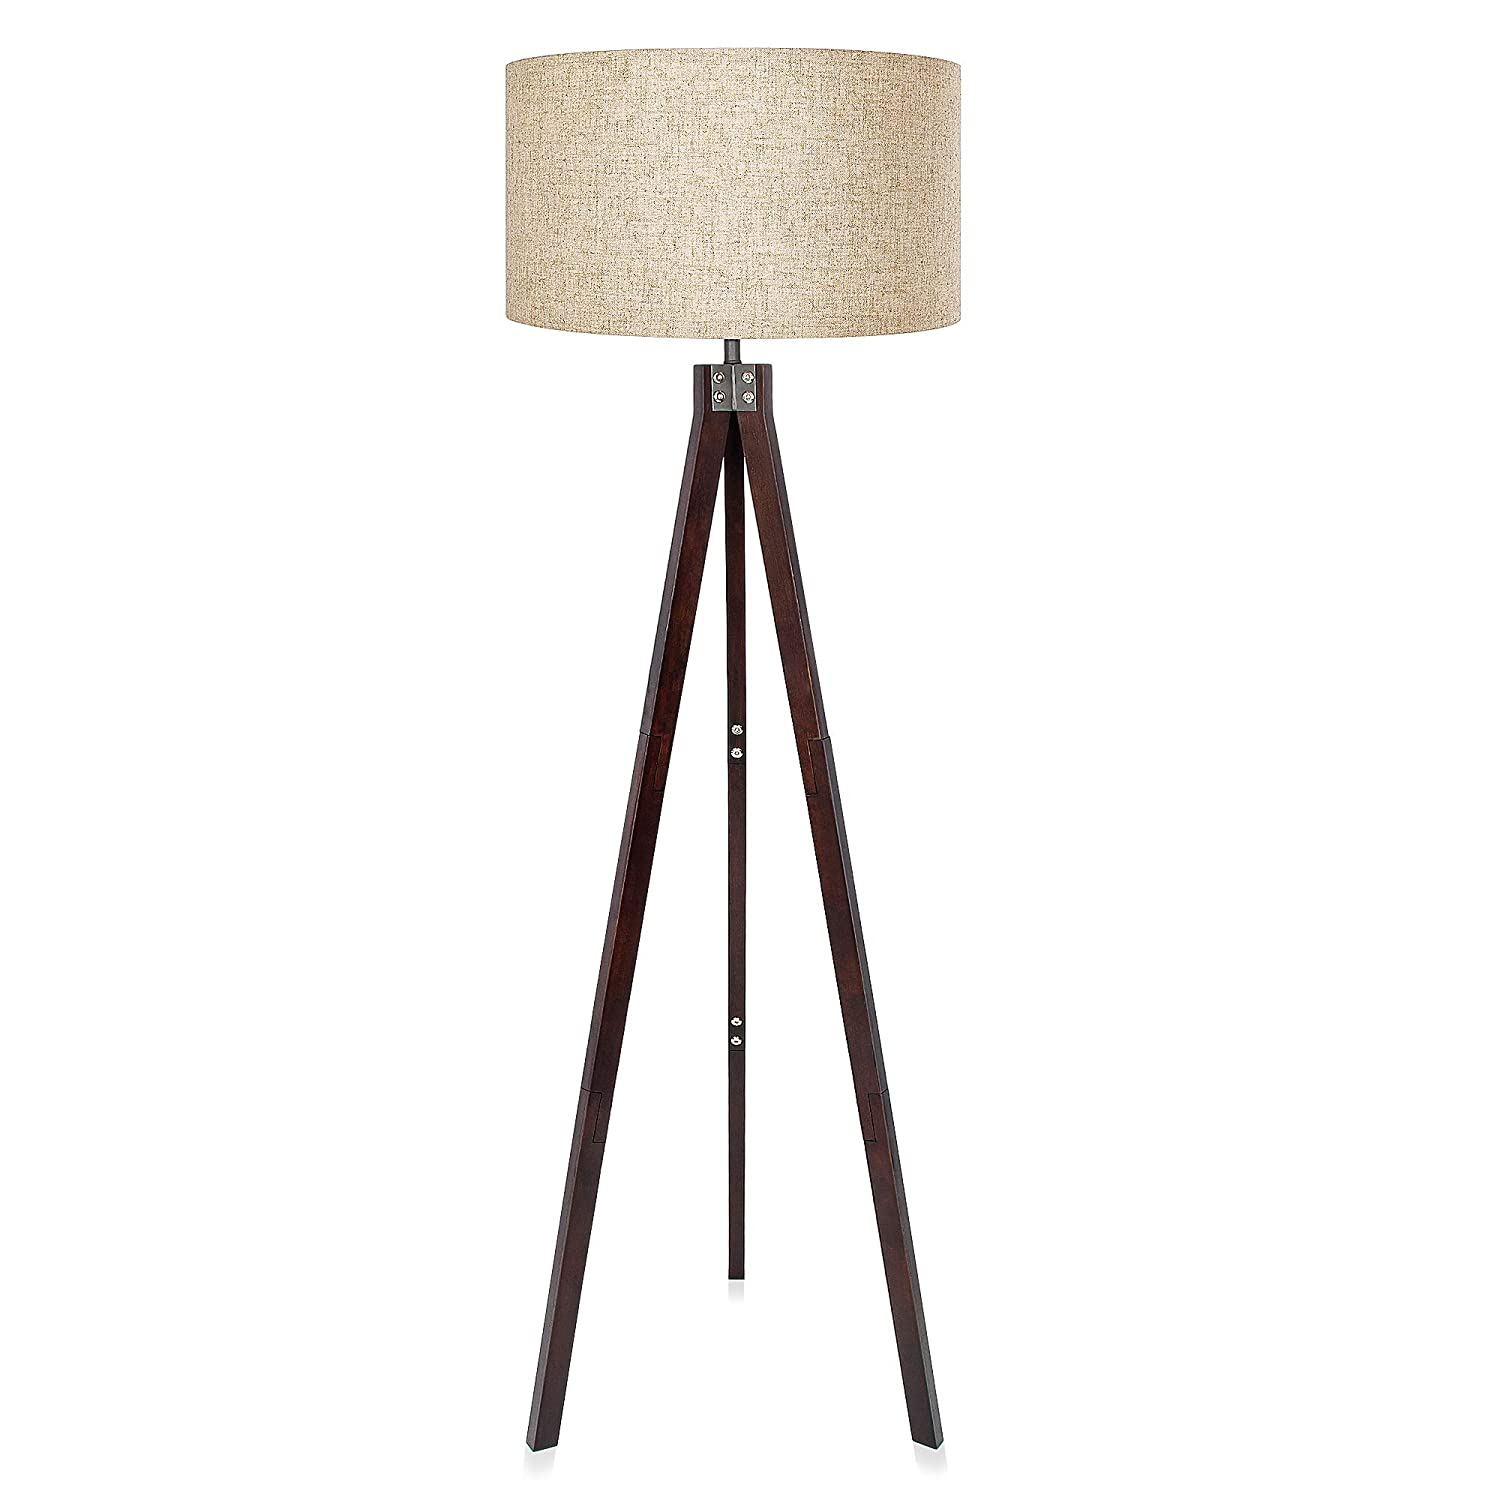 LEPOWER Wood Tripod Floor Lamp, Standing Reading Light for Living Room, Bedroom, Study Room and Office, Modern Design, Flaxen Lamp Shade with E26 Lamp Base (Black Walnut)